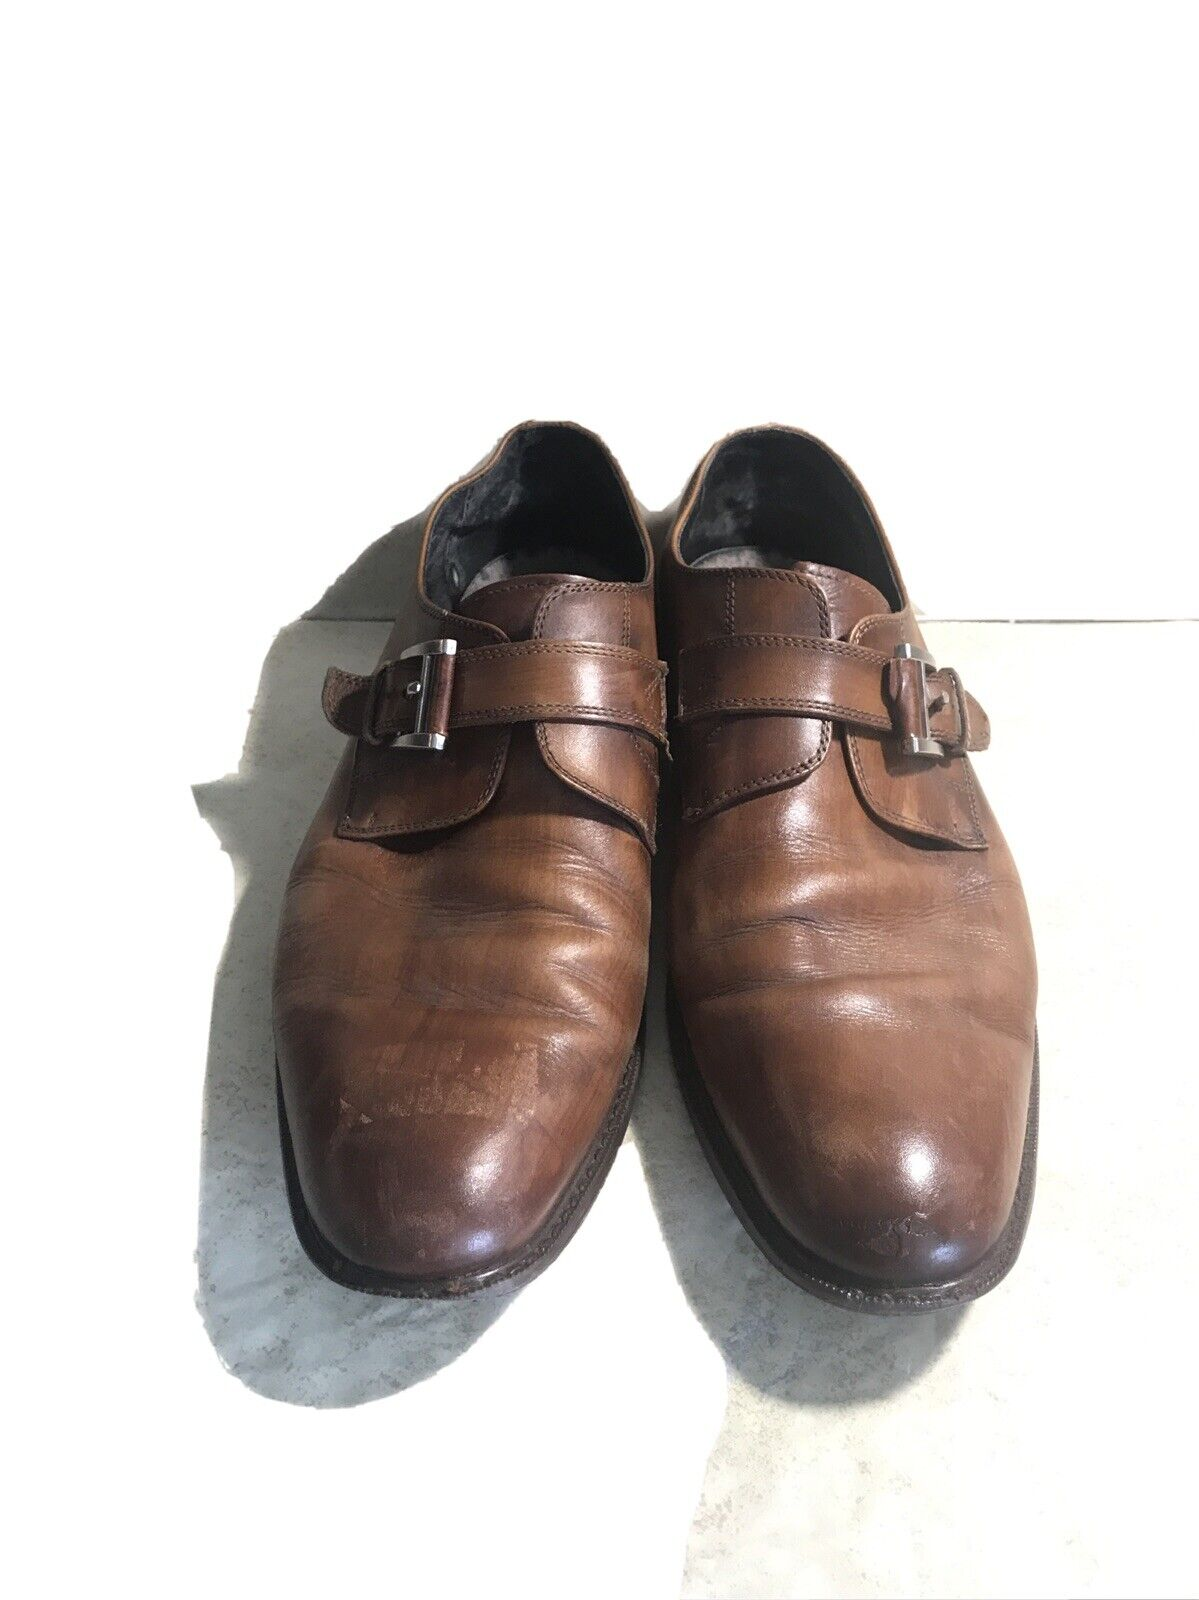 Joseph Abboud Will II Collection Mens Dress Shoe Size 12 Brown Dark Tan Leather